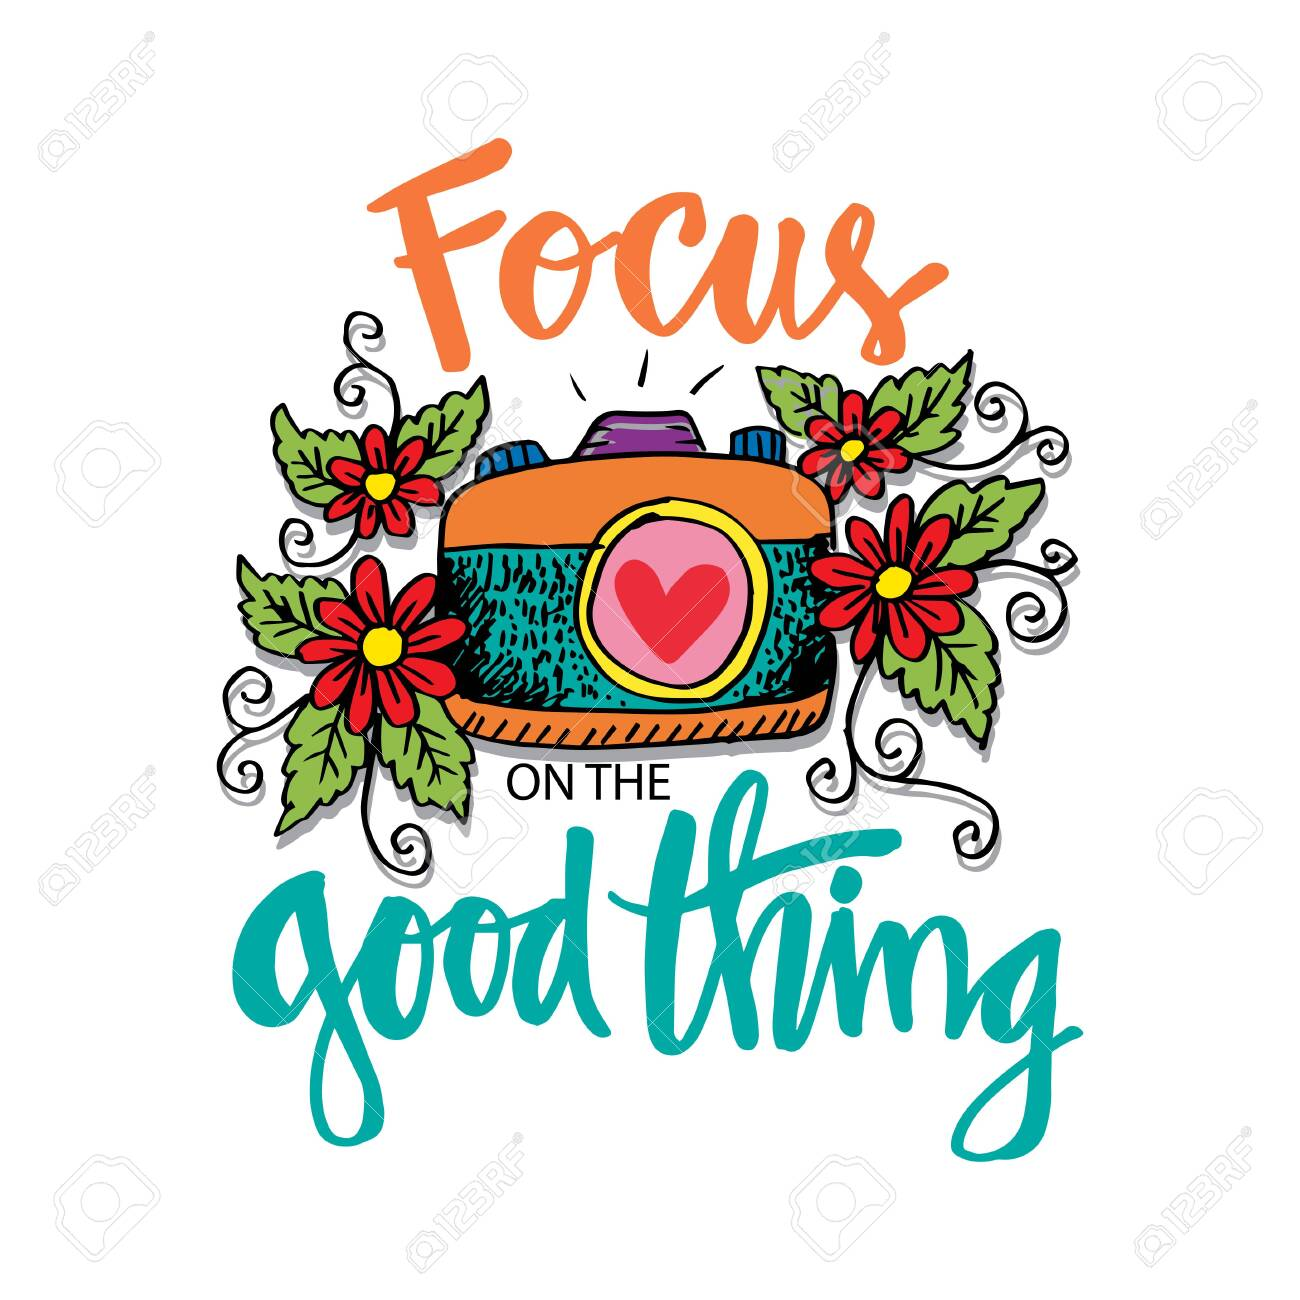 Focus on the good things. Motivational quote poster..